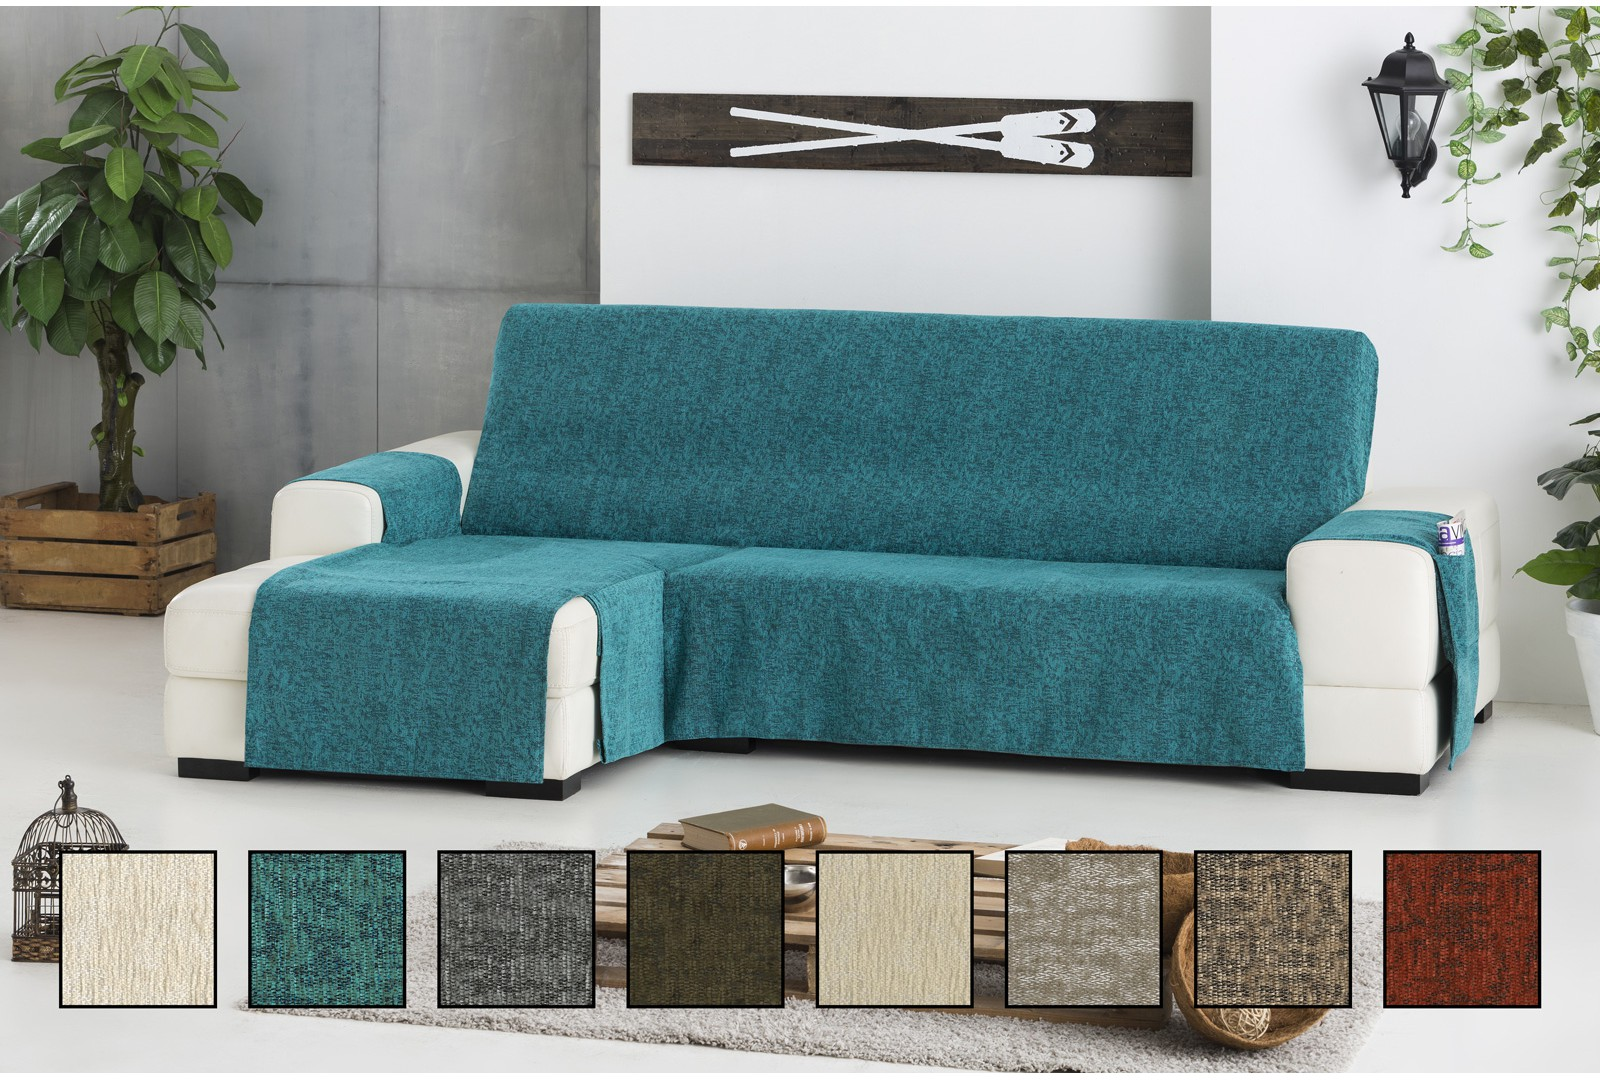 FUNDA DE SOFA CHAISE LONGE DREAM